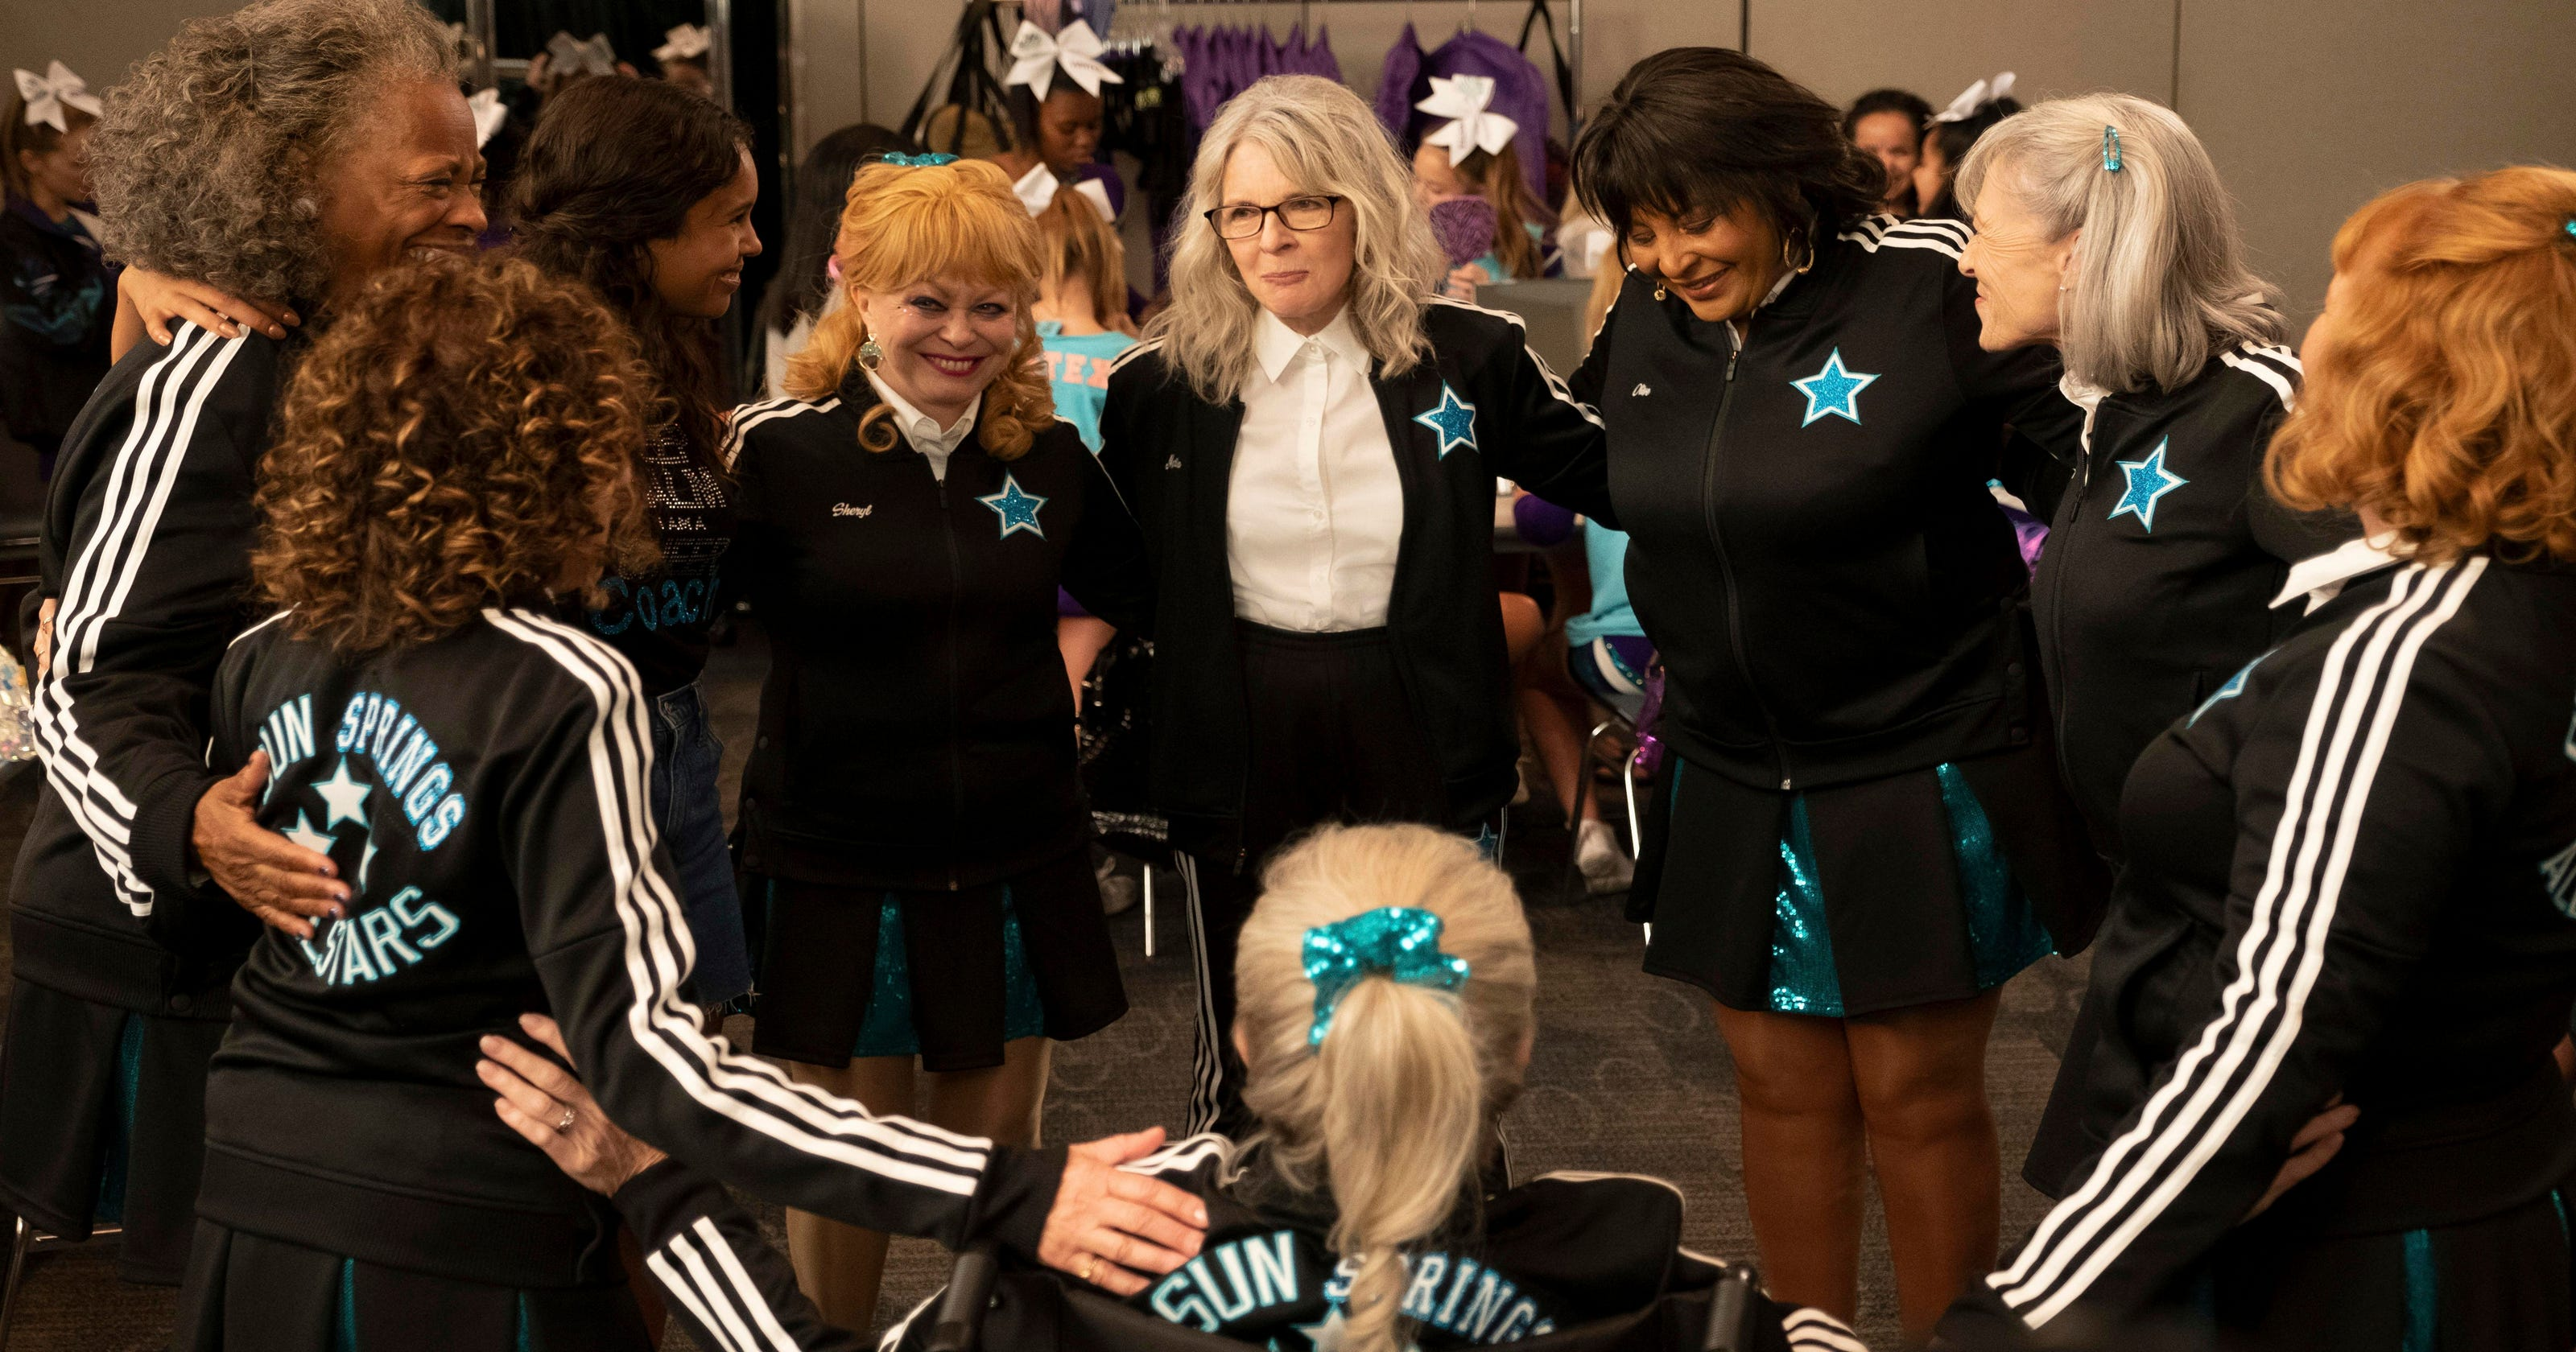 'Poms' Is Too Embarrassed Of Itself To Be Empowering